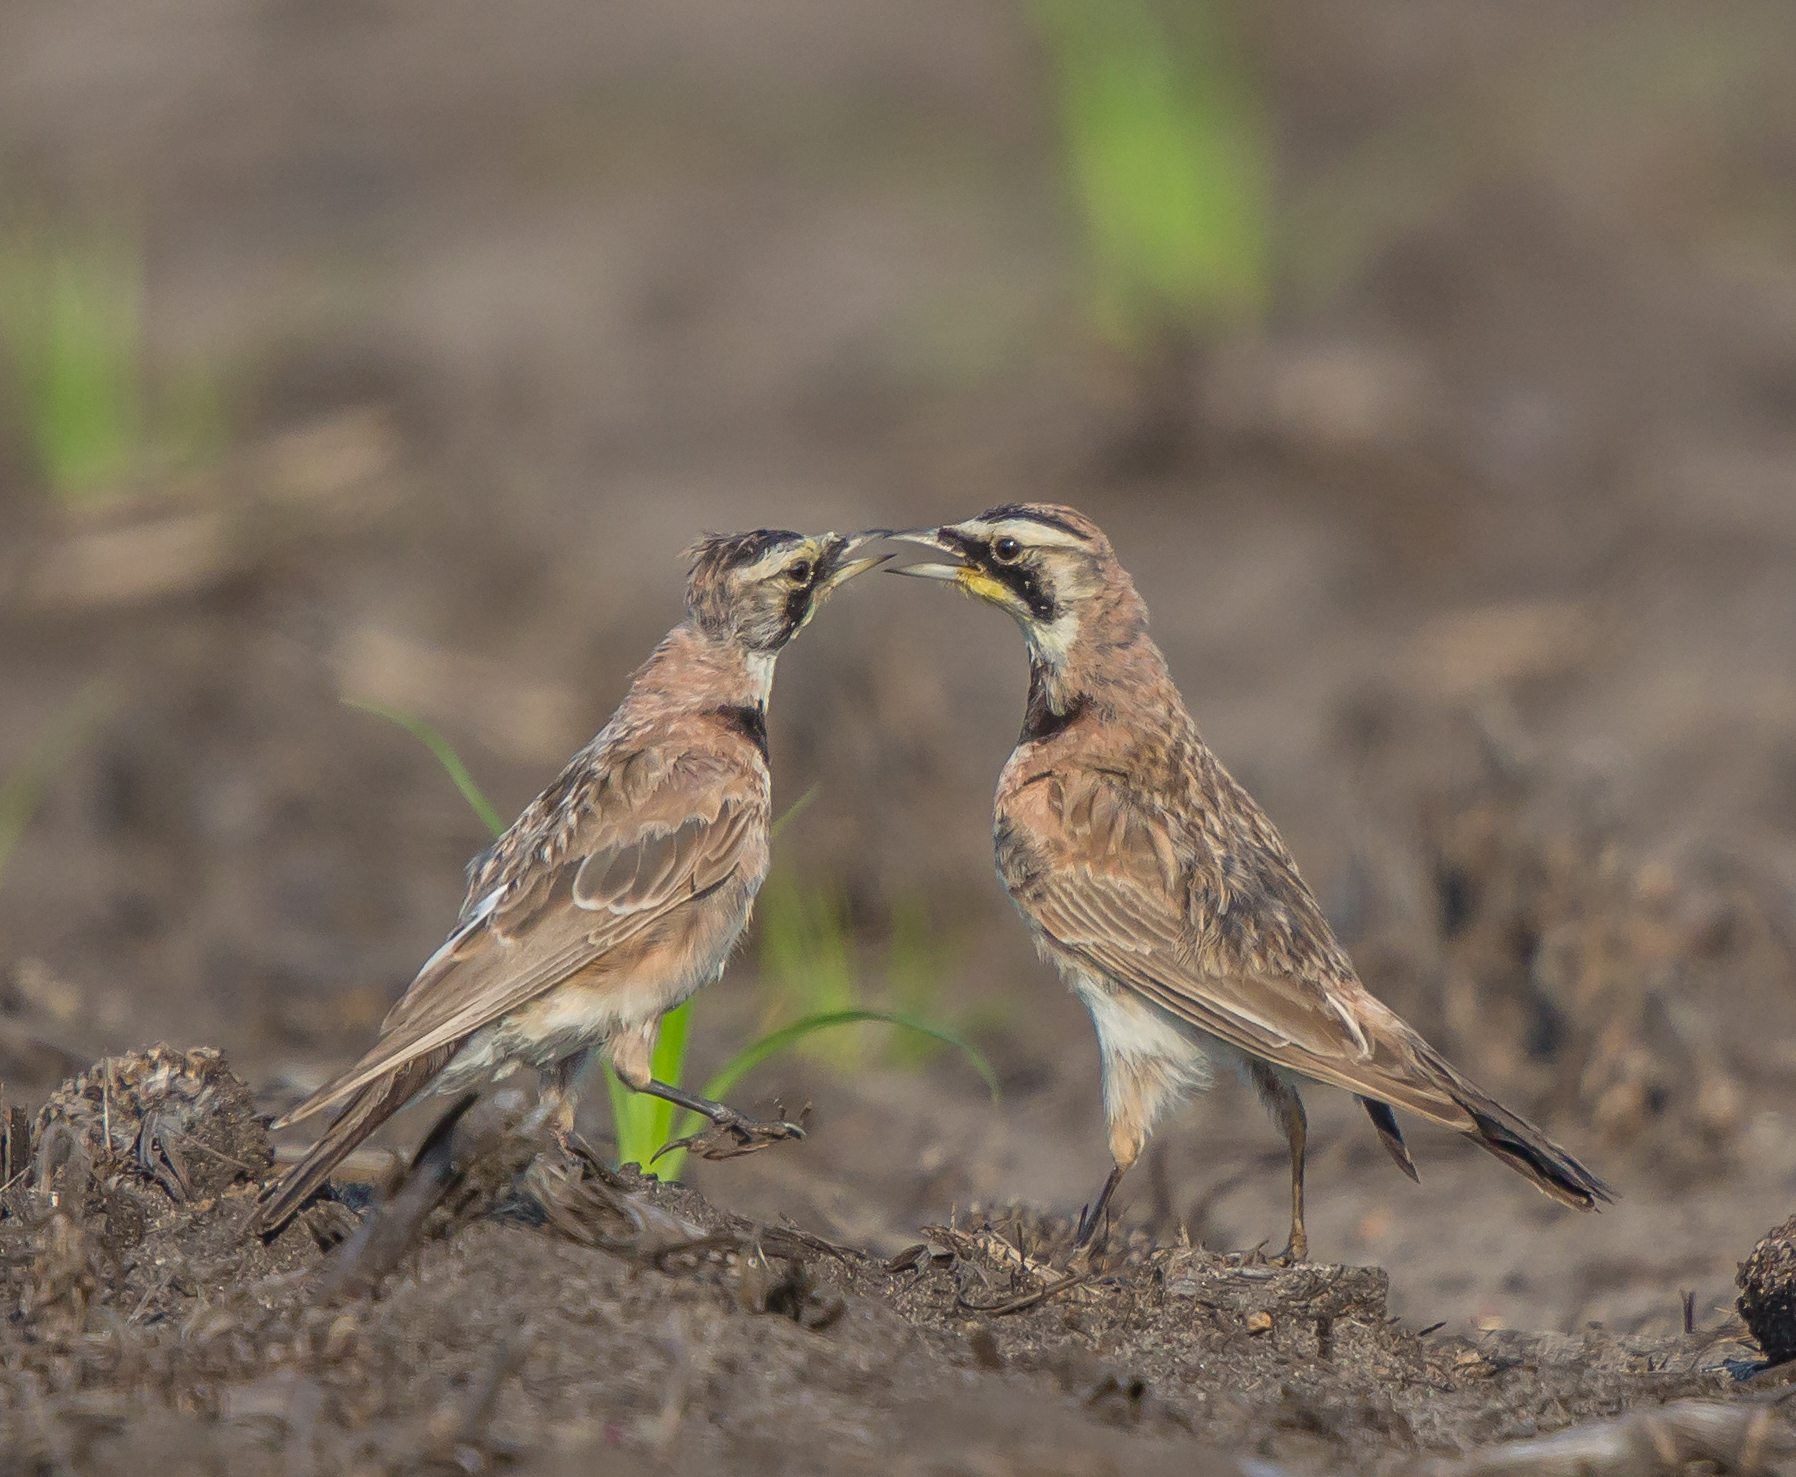 Adult and Immature Horned Lark